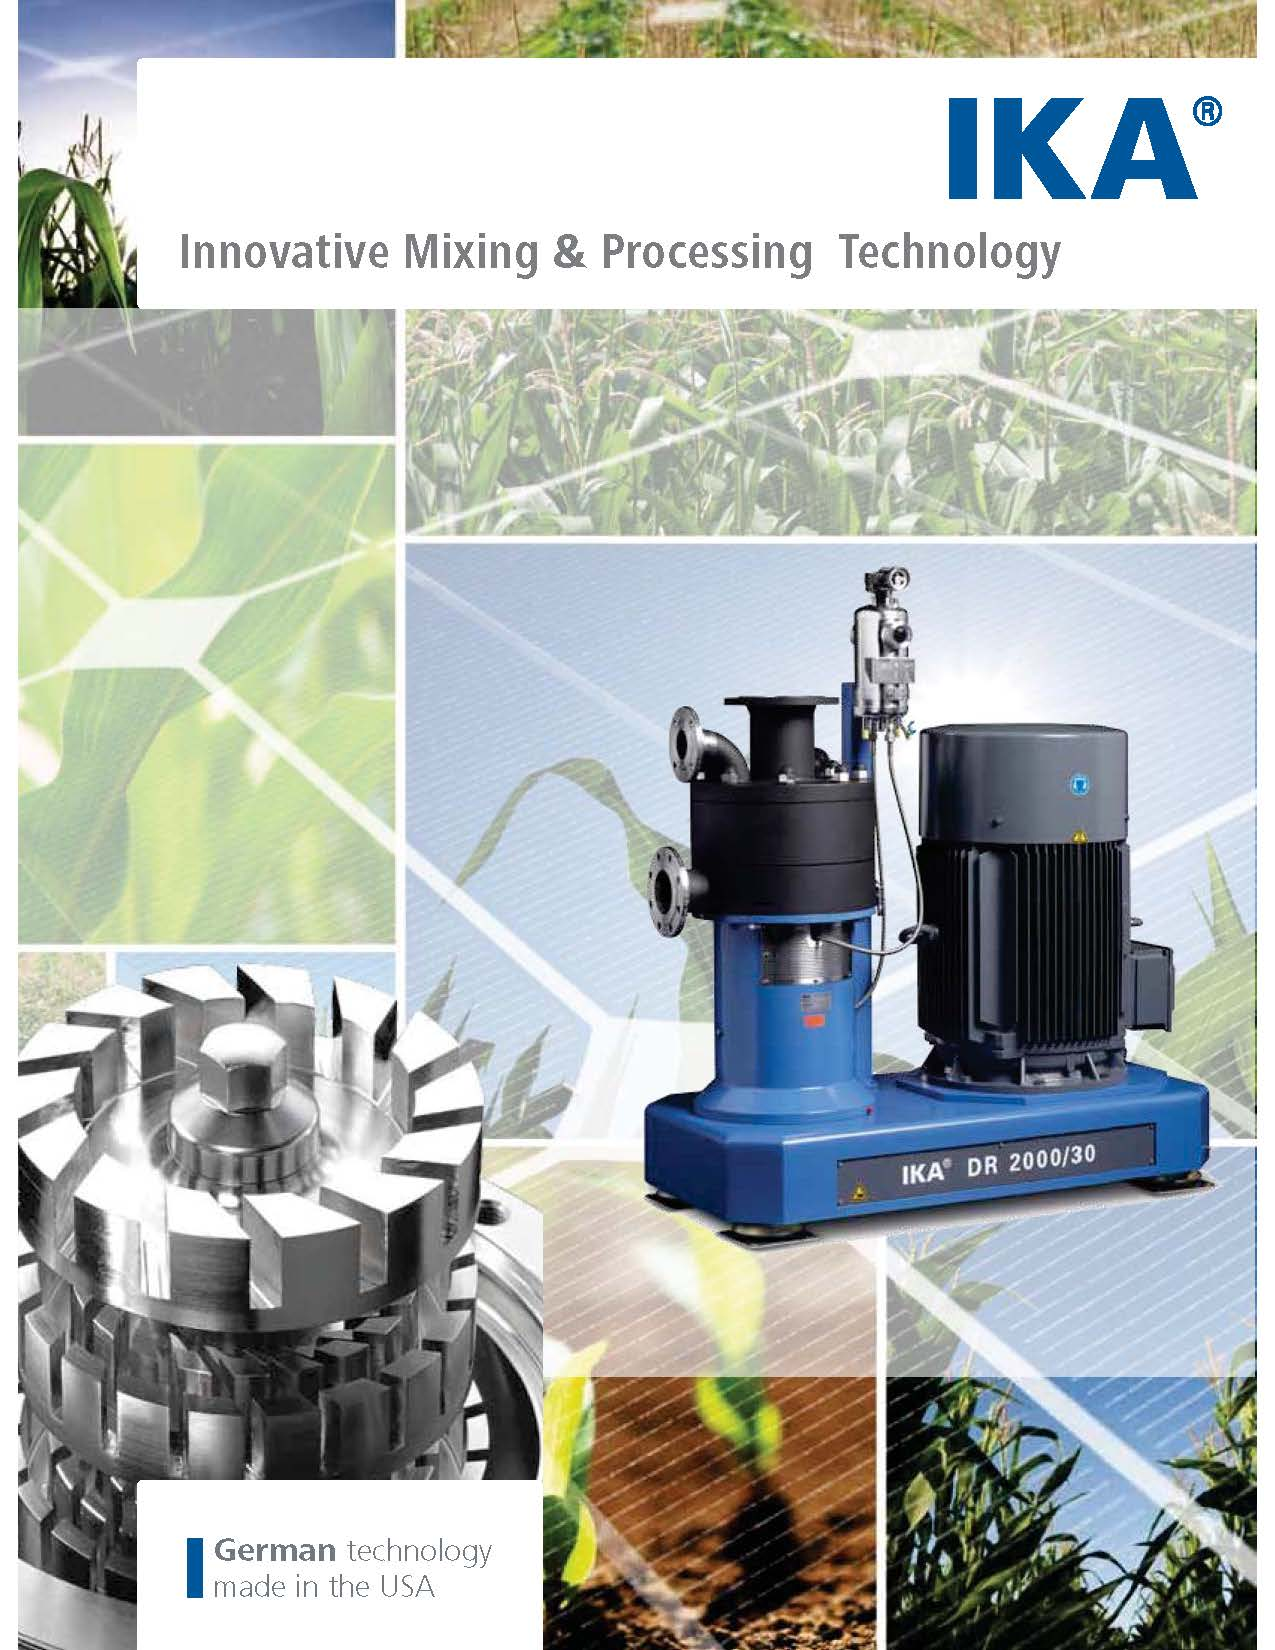 Biodiesel – Innovative Mixing & Processing Technology Image